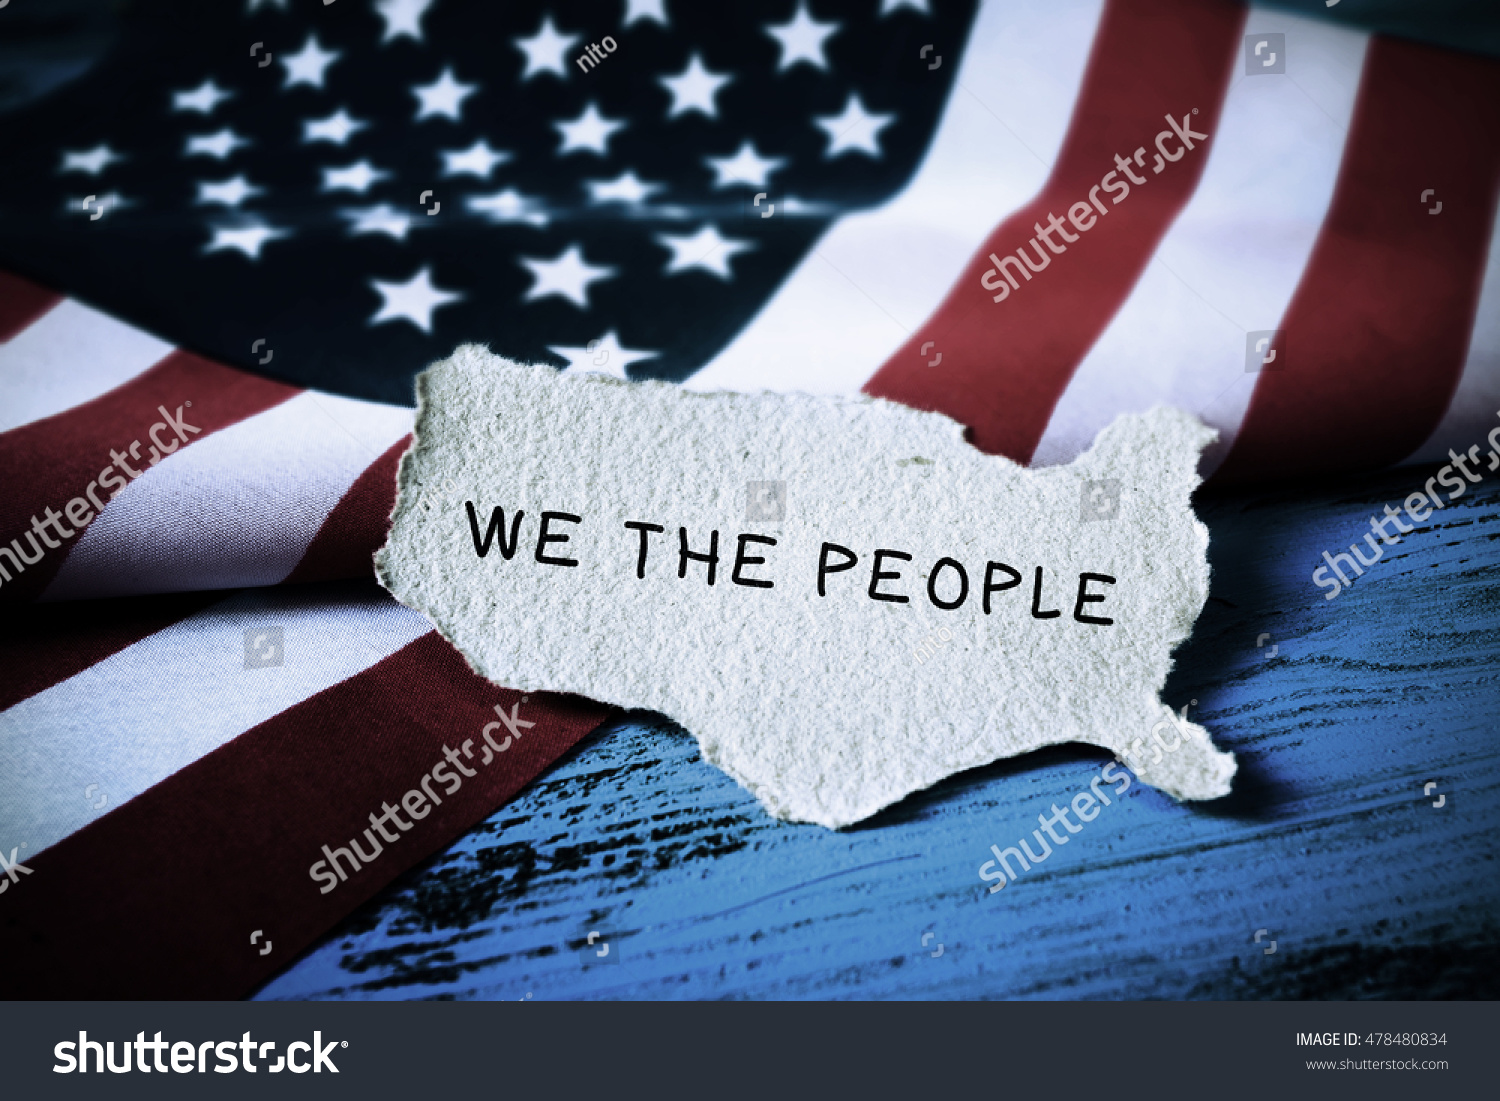 """we the people essays The united states constitution begins with the simple phrase """"we the people""""  yet, with three simple words, the ideology it stands for has shaped the entire."""